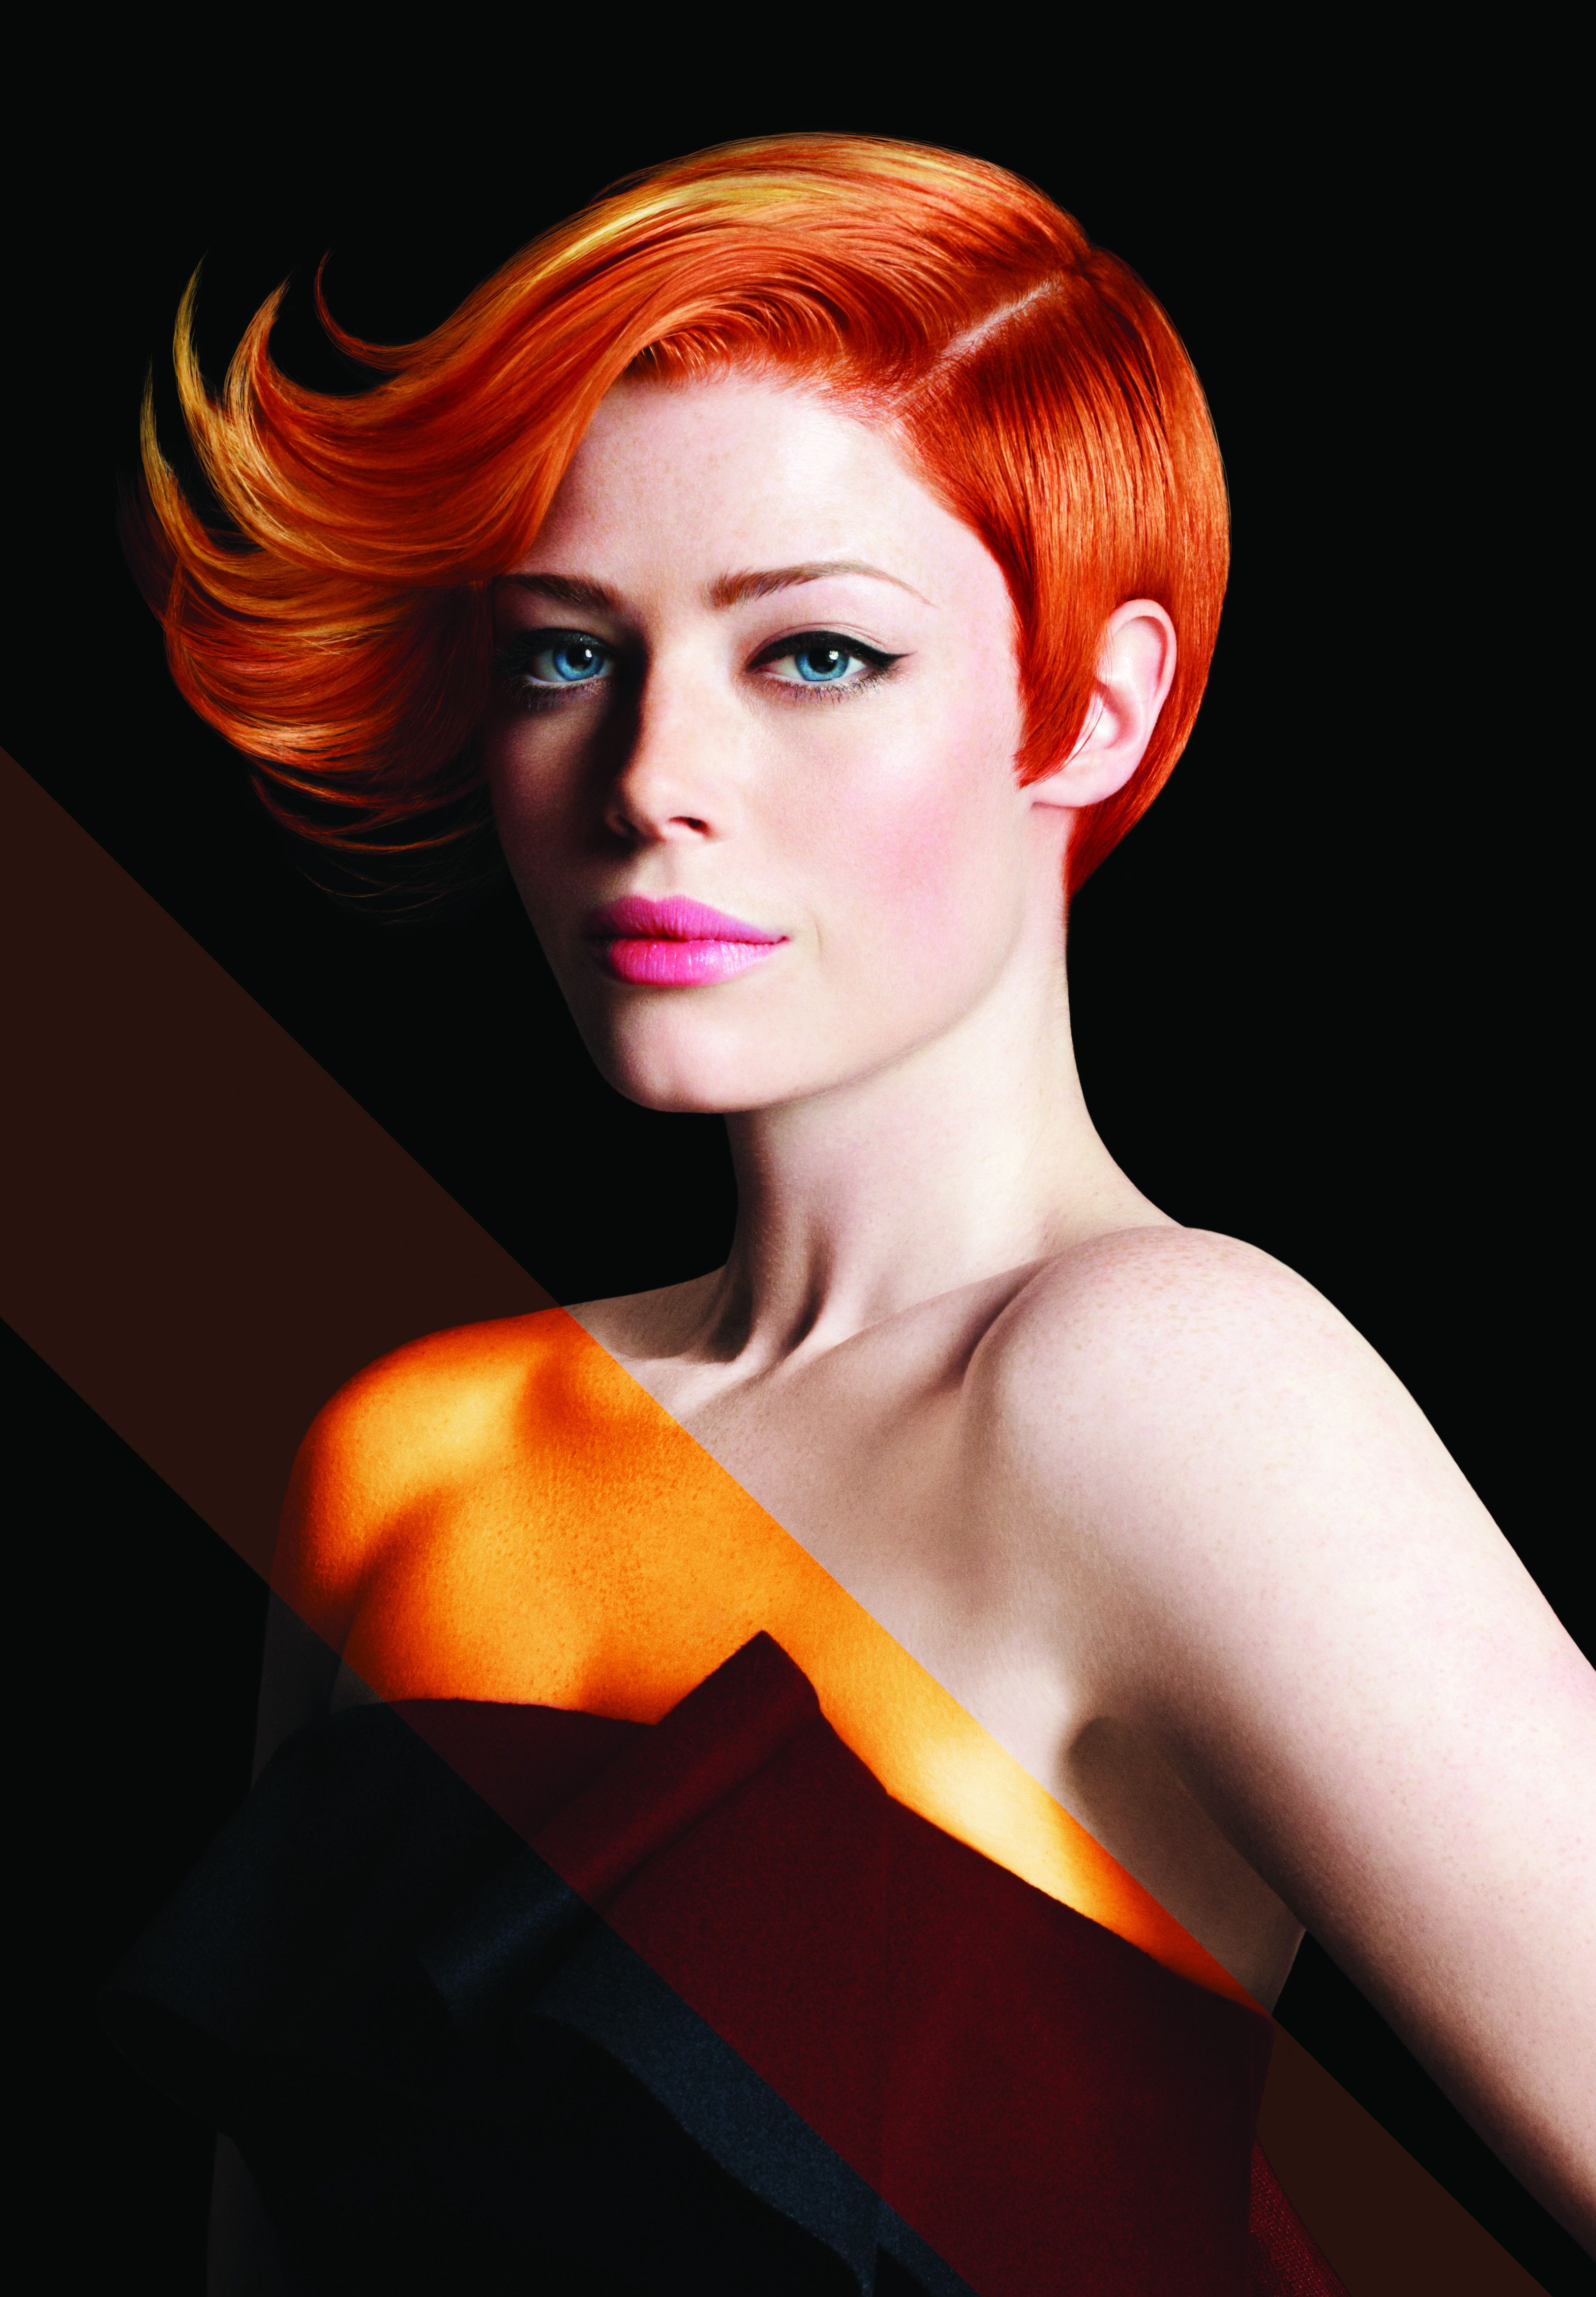 Paul Mitchell Professional Hair Colour Red Hair